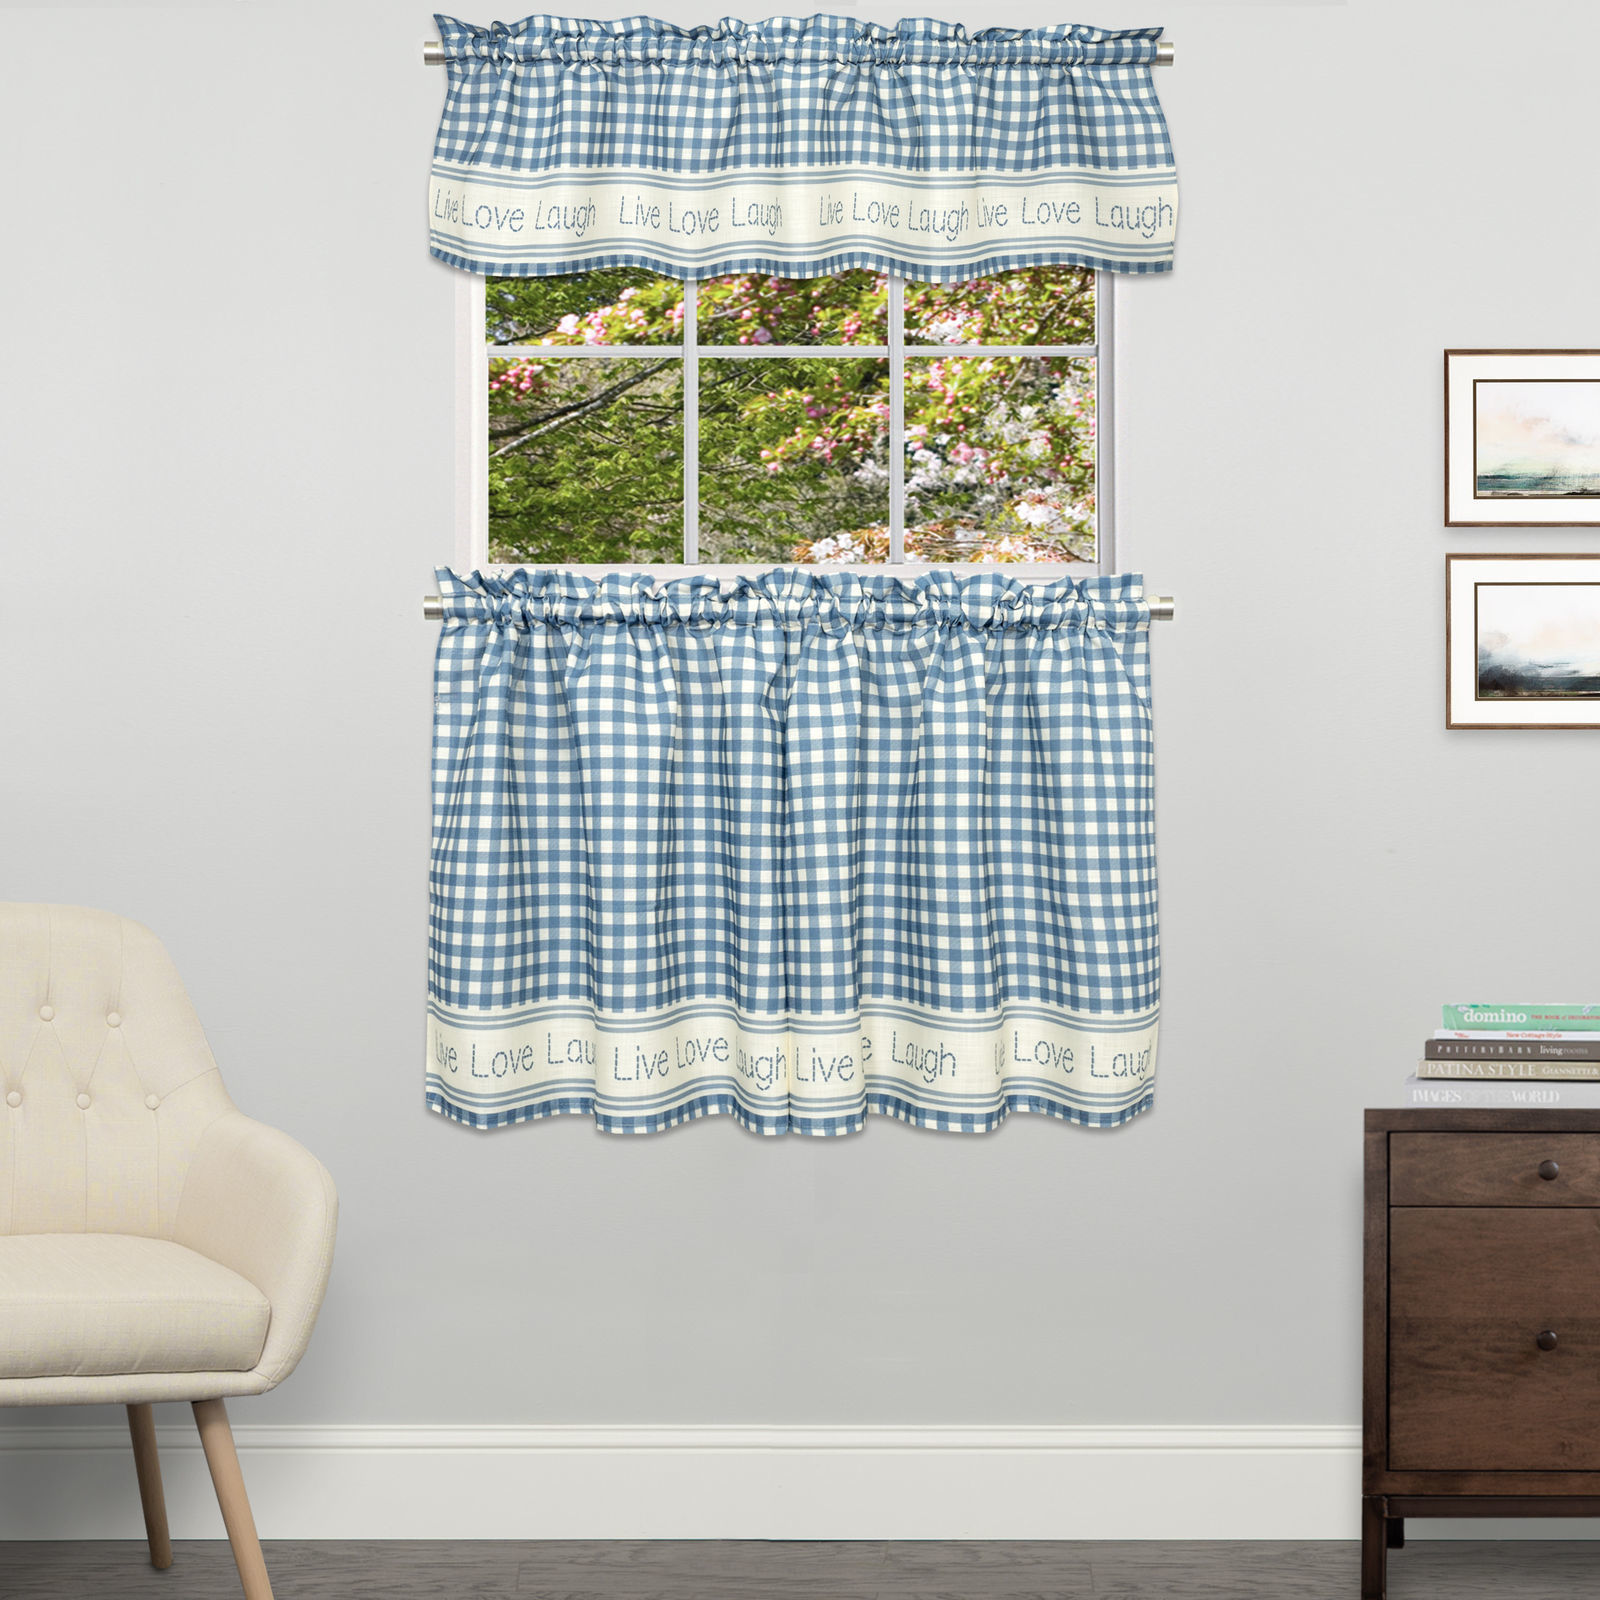 Gingham Stitch Live Laugh Love Kitchen Curtain Tier Pair or Valance Blue - $14.59